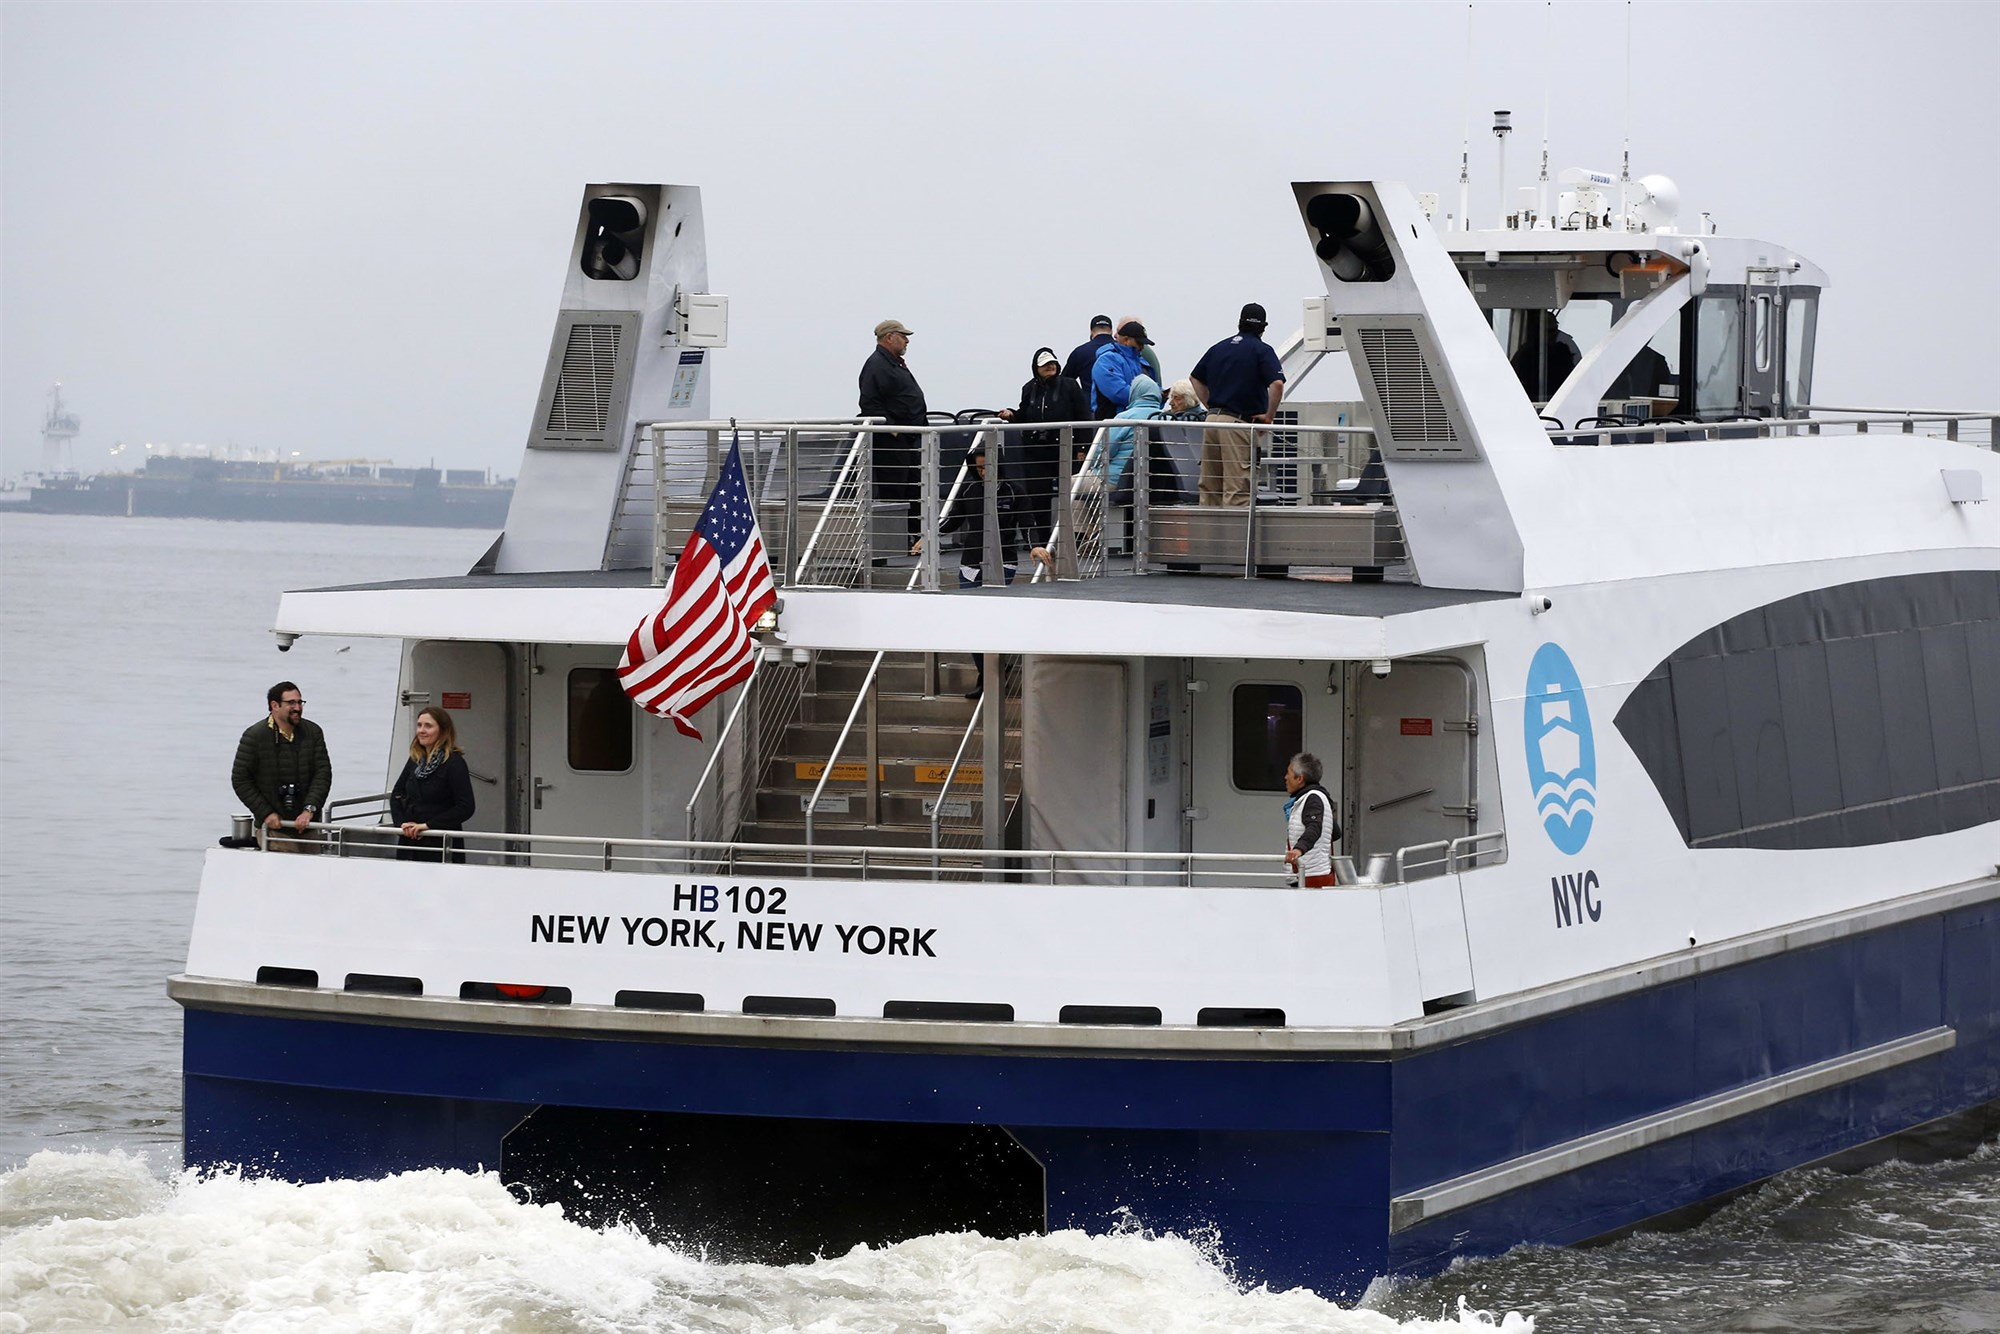 Muslim Families not Allowed to Board NYC Ferry after being Labeled a 'Security Issue,' Complaint Says